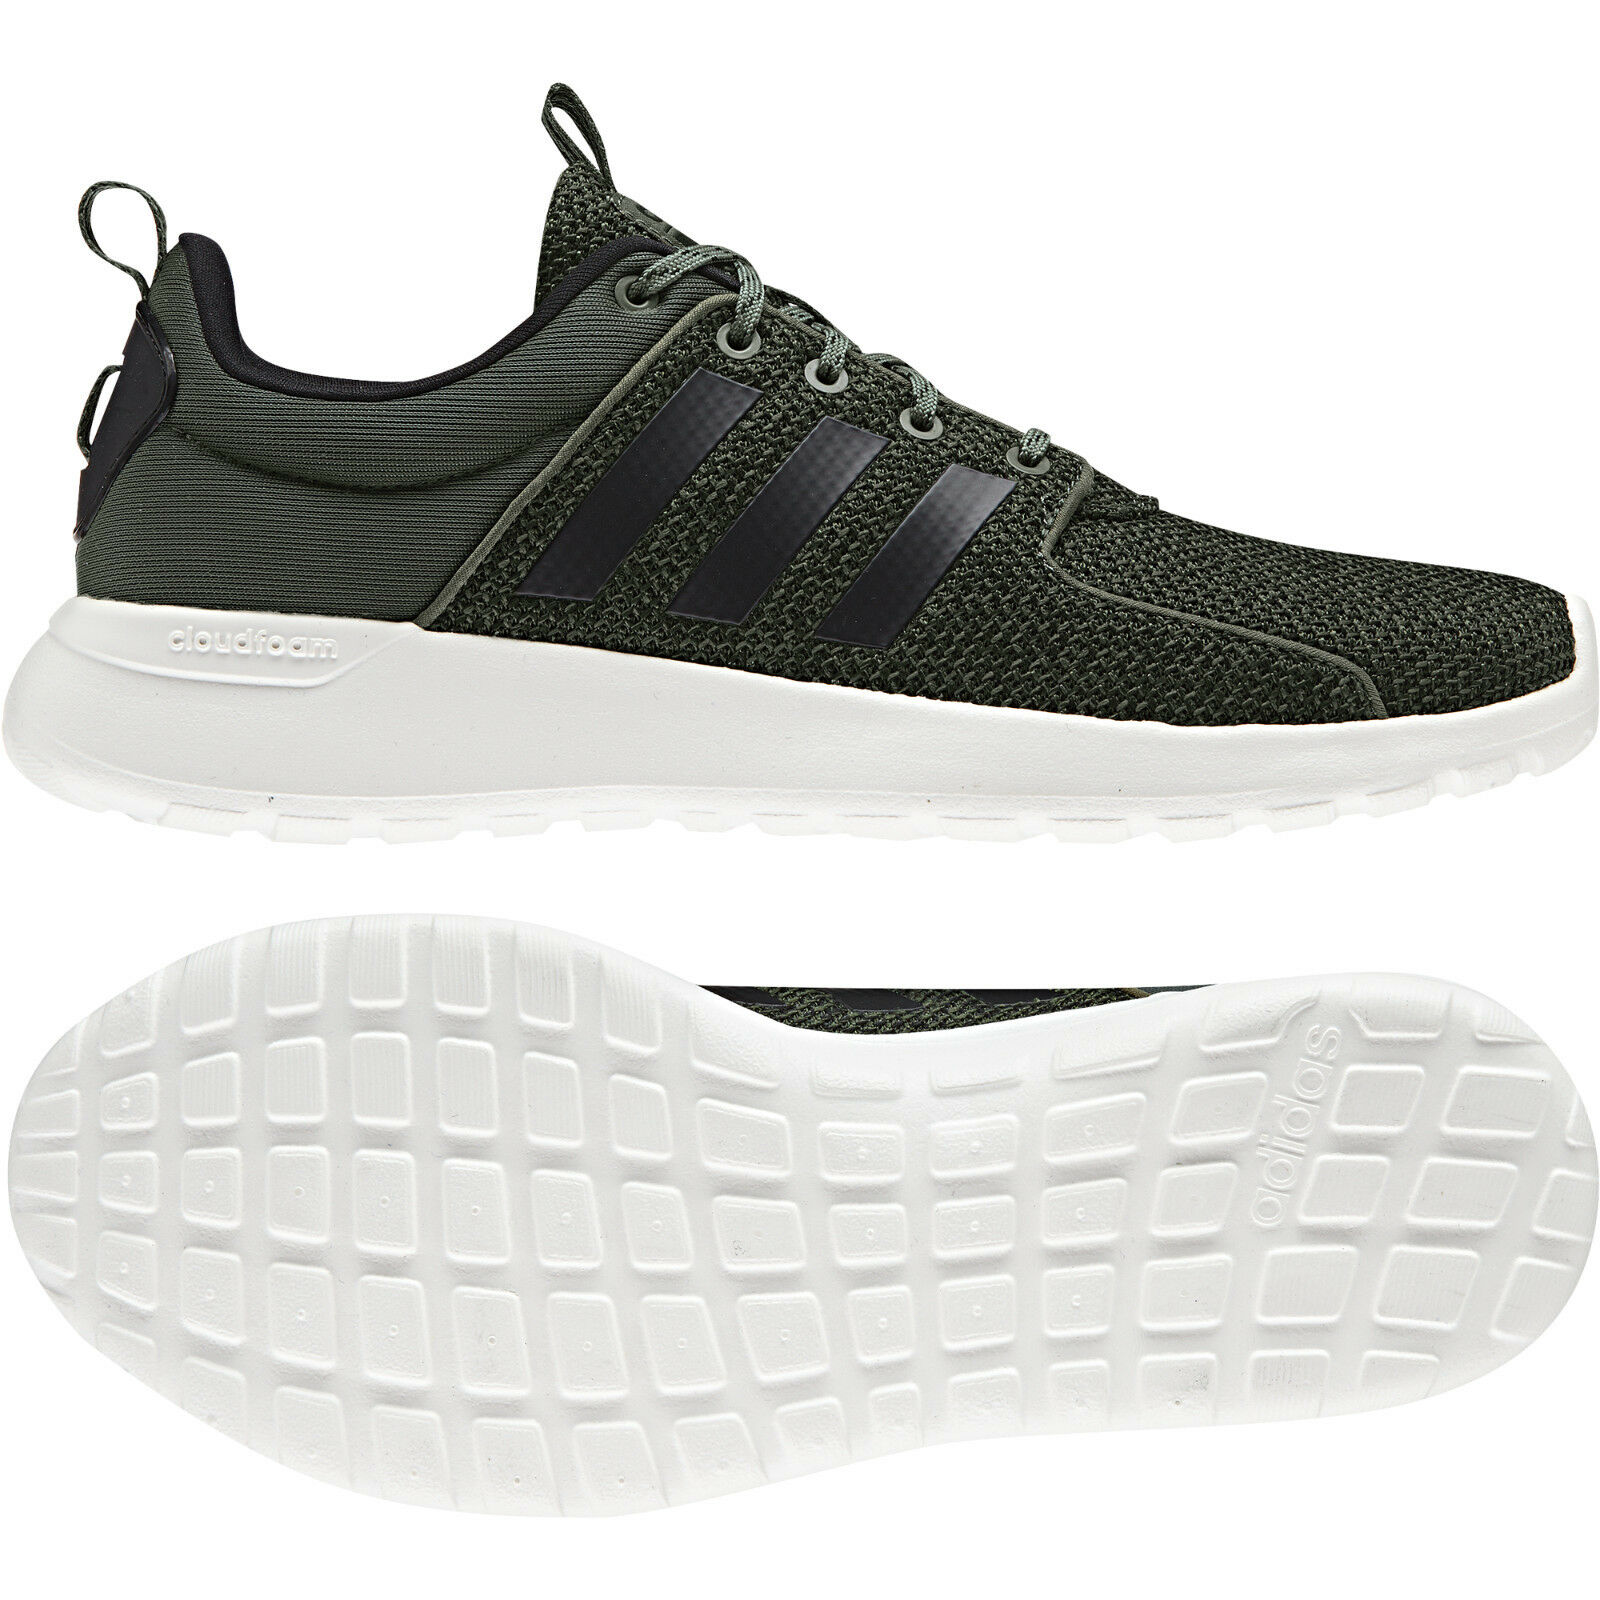 Adidas Men Running Schuhes Essentials New Lite Racer Trainers Sneakers New Essentials Gym B44732 025c88